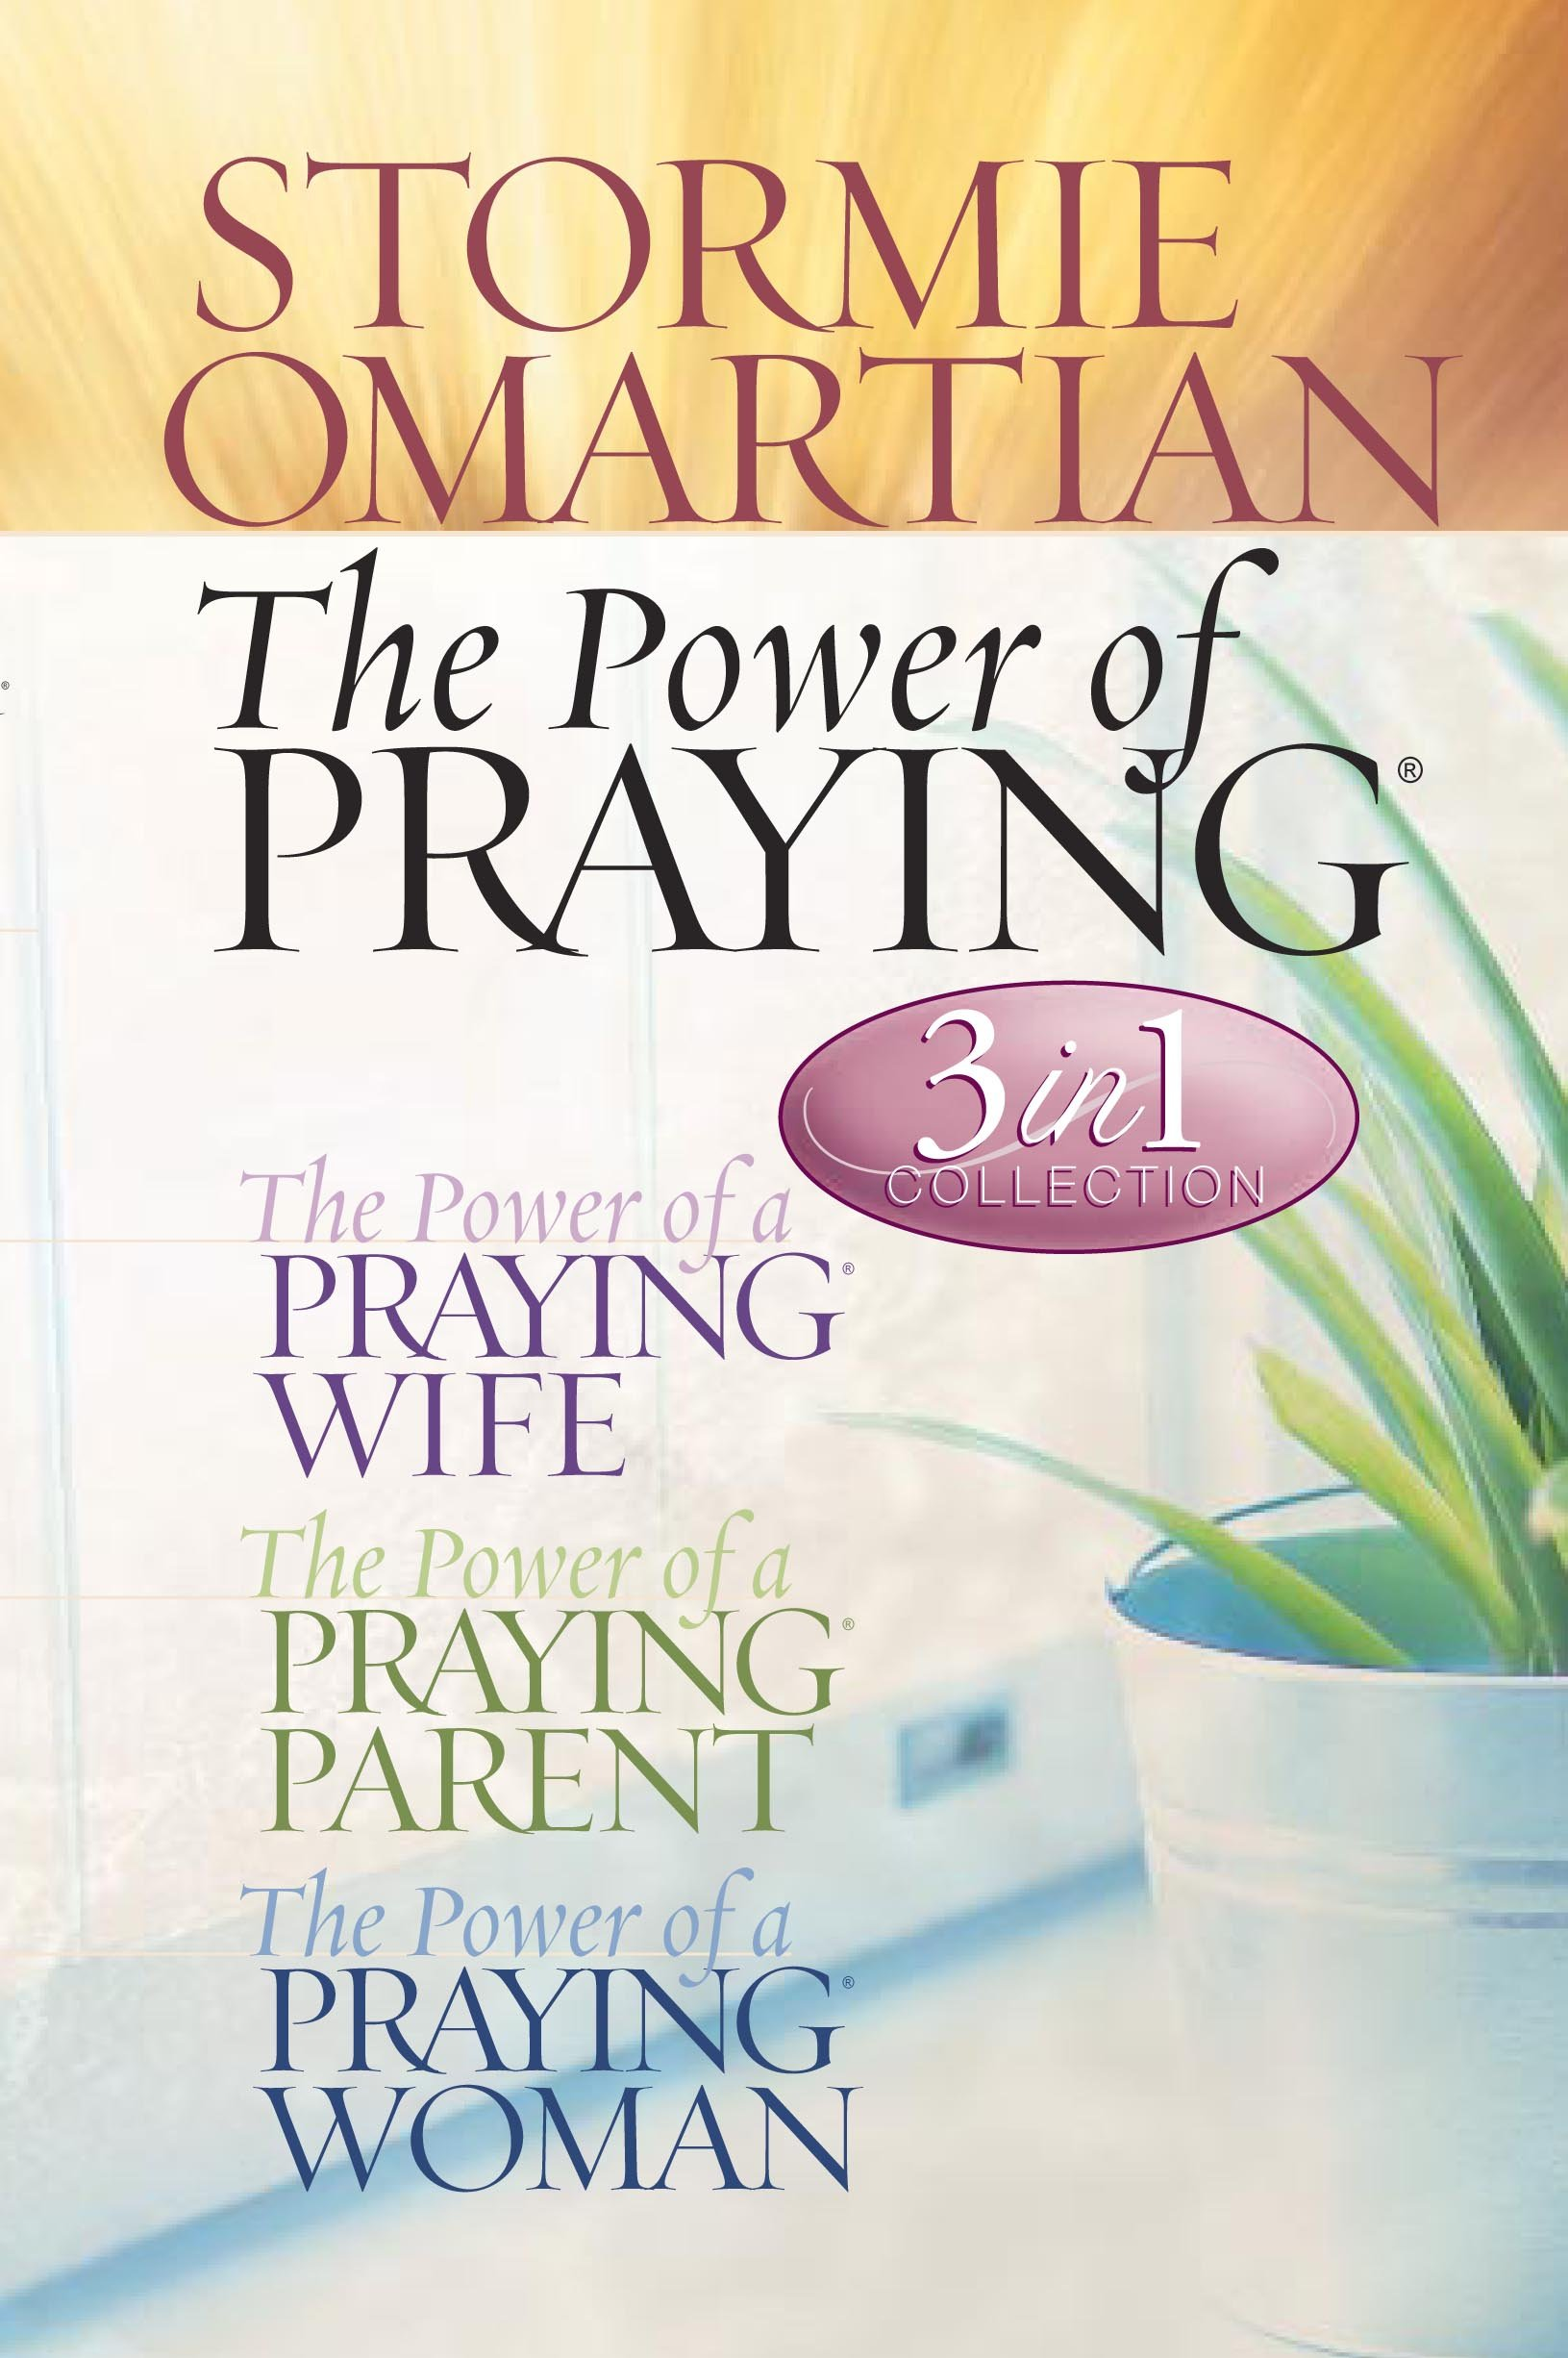 The Power of Praying (3 in 1 Collection:  The Power of a Praying Wife, The Power of a Praying Parent, the Power of a Praying Woman) ebook